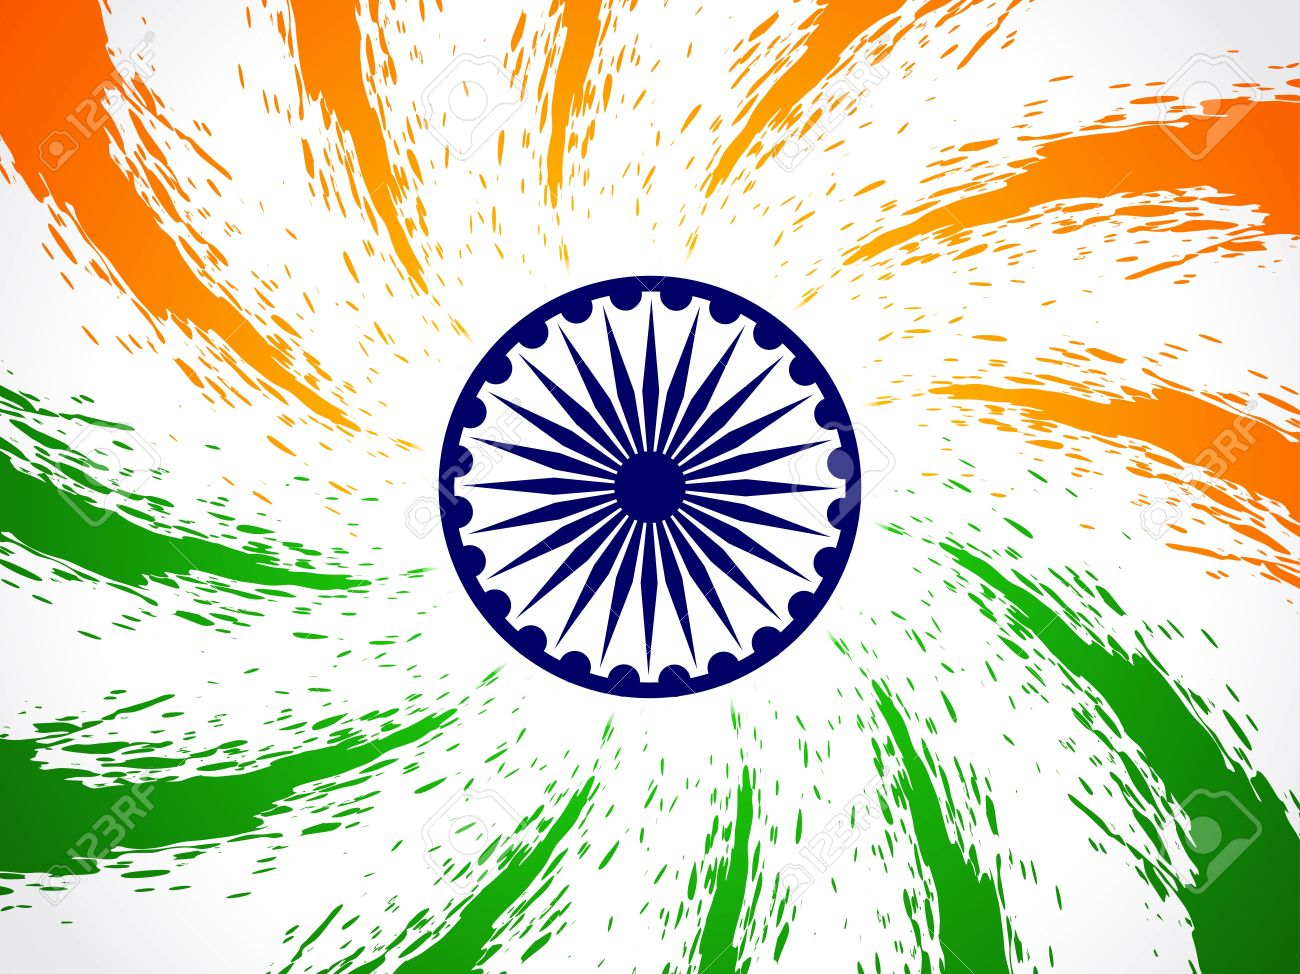 Beautiful Indian flag design